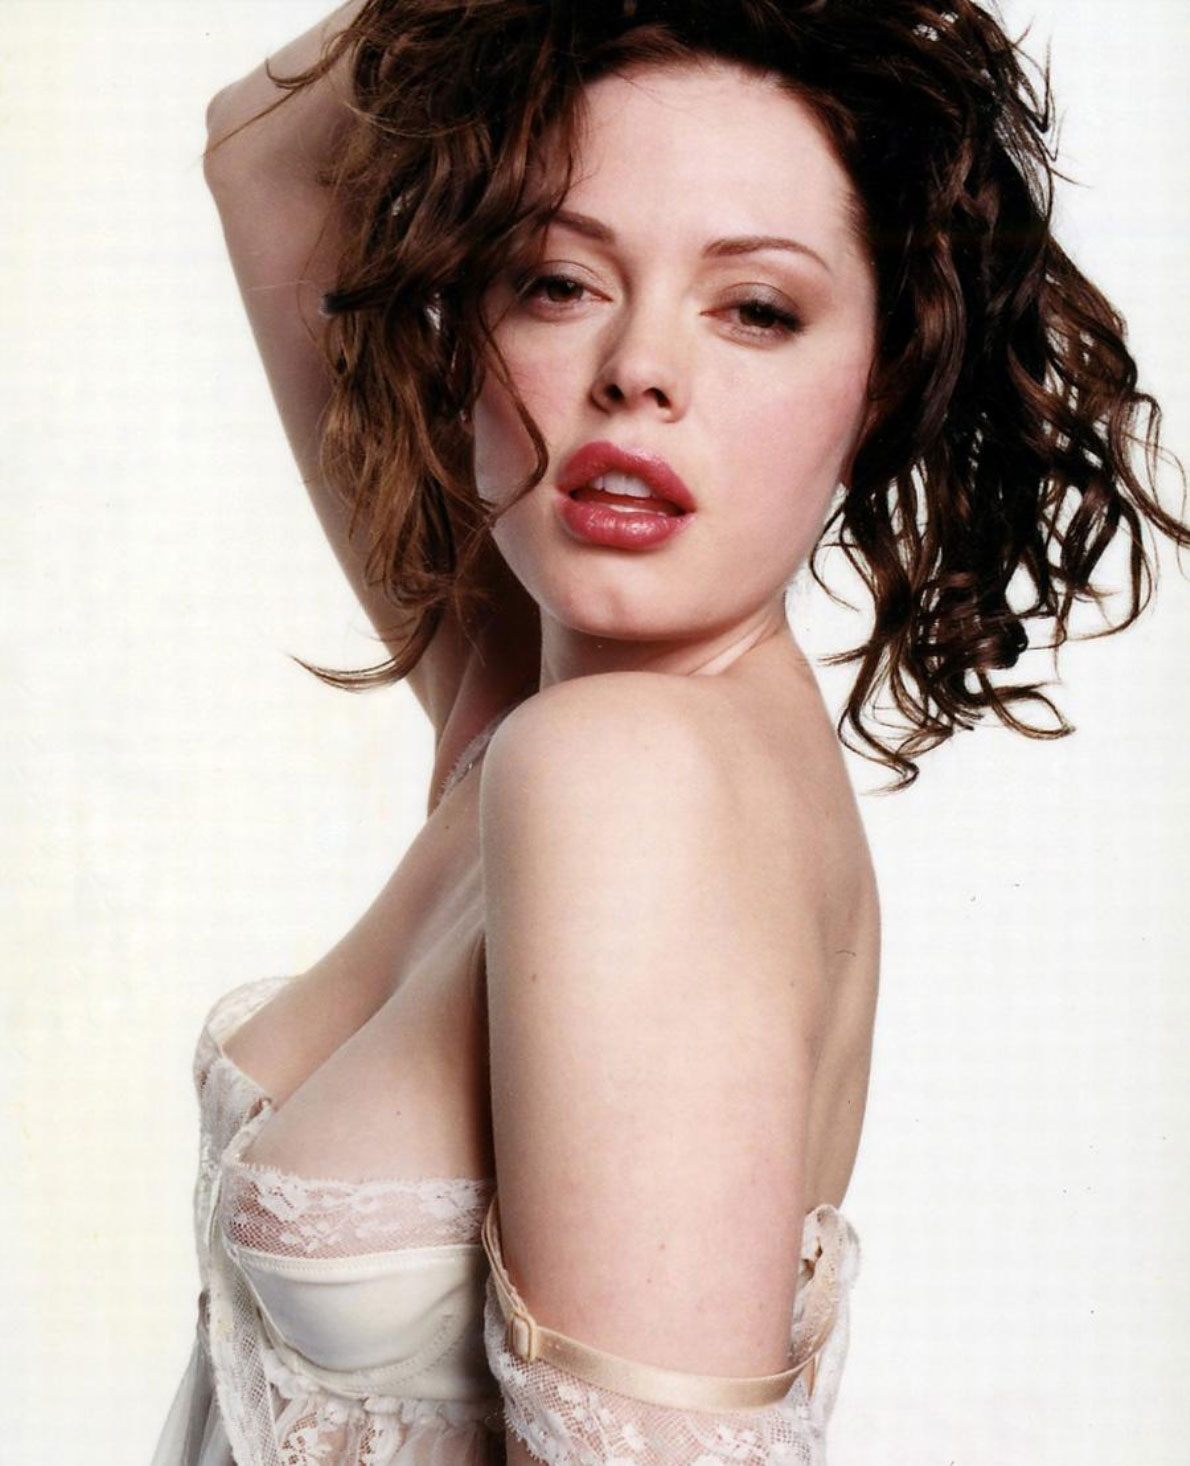 Rose mcgowan naked images for that